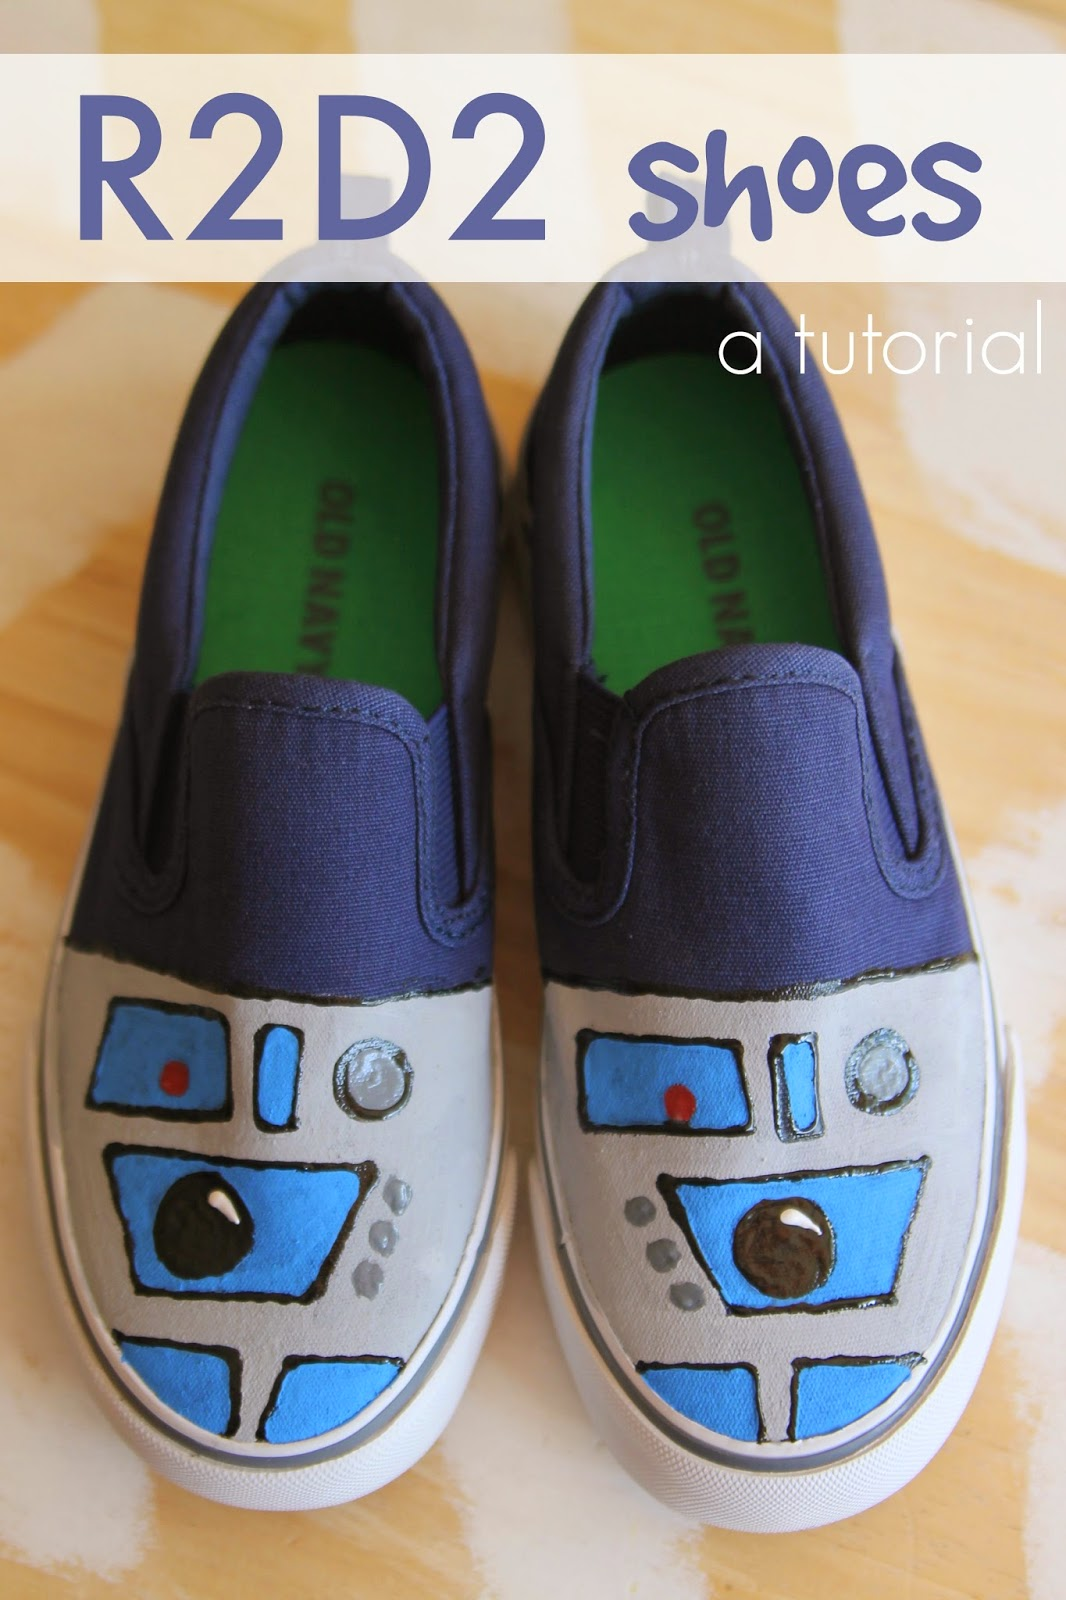 R2D2 Shoe Tutorial